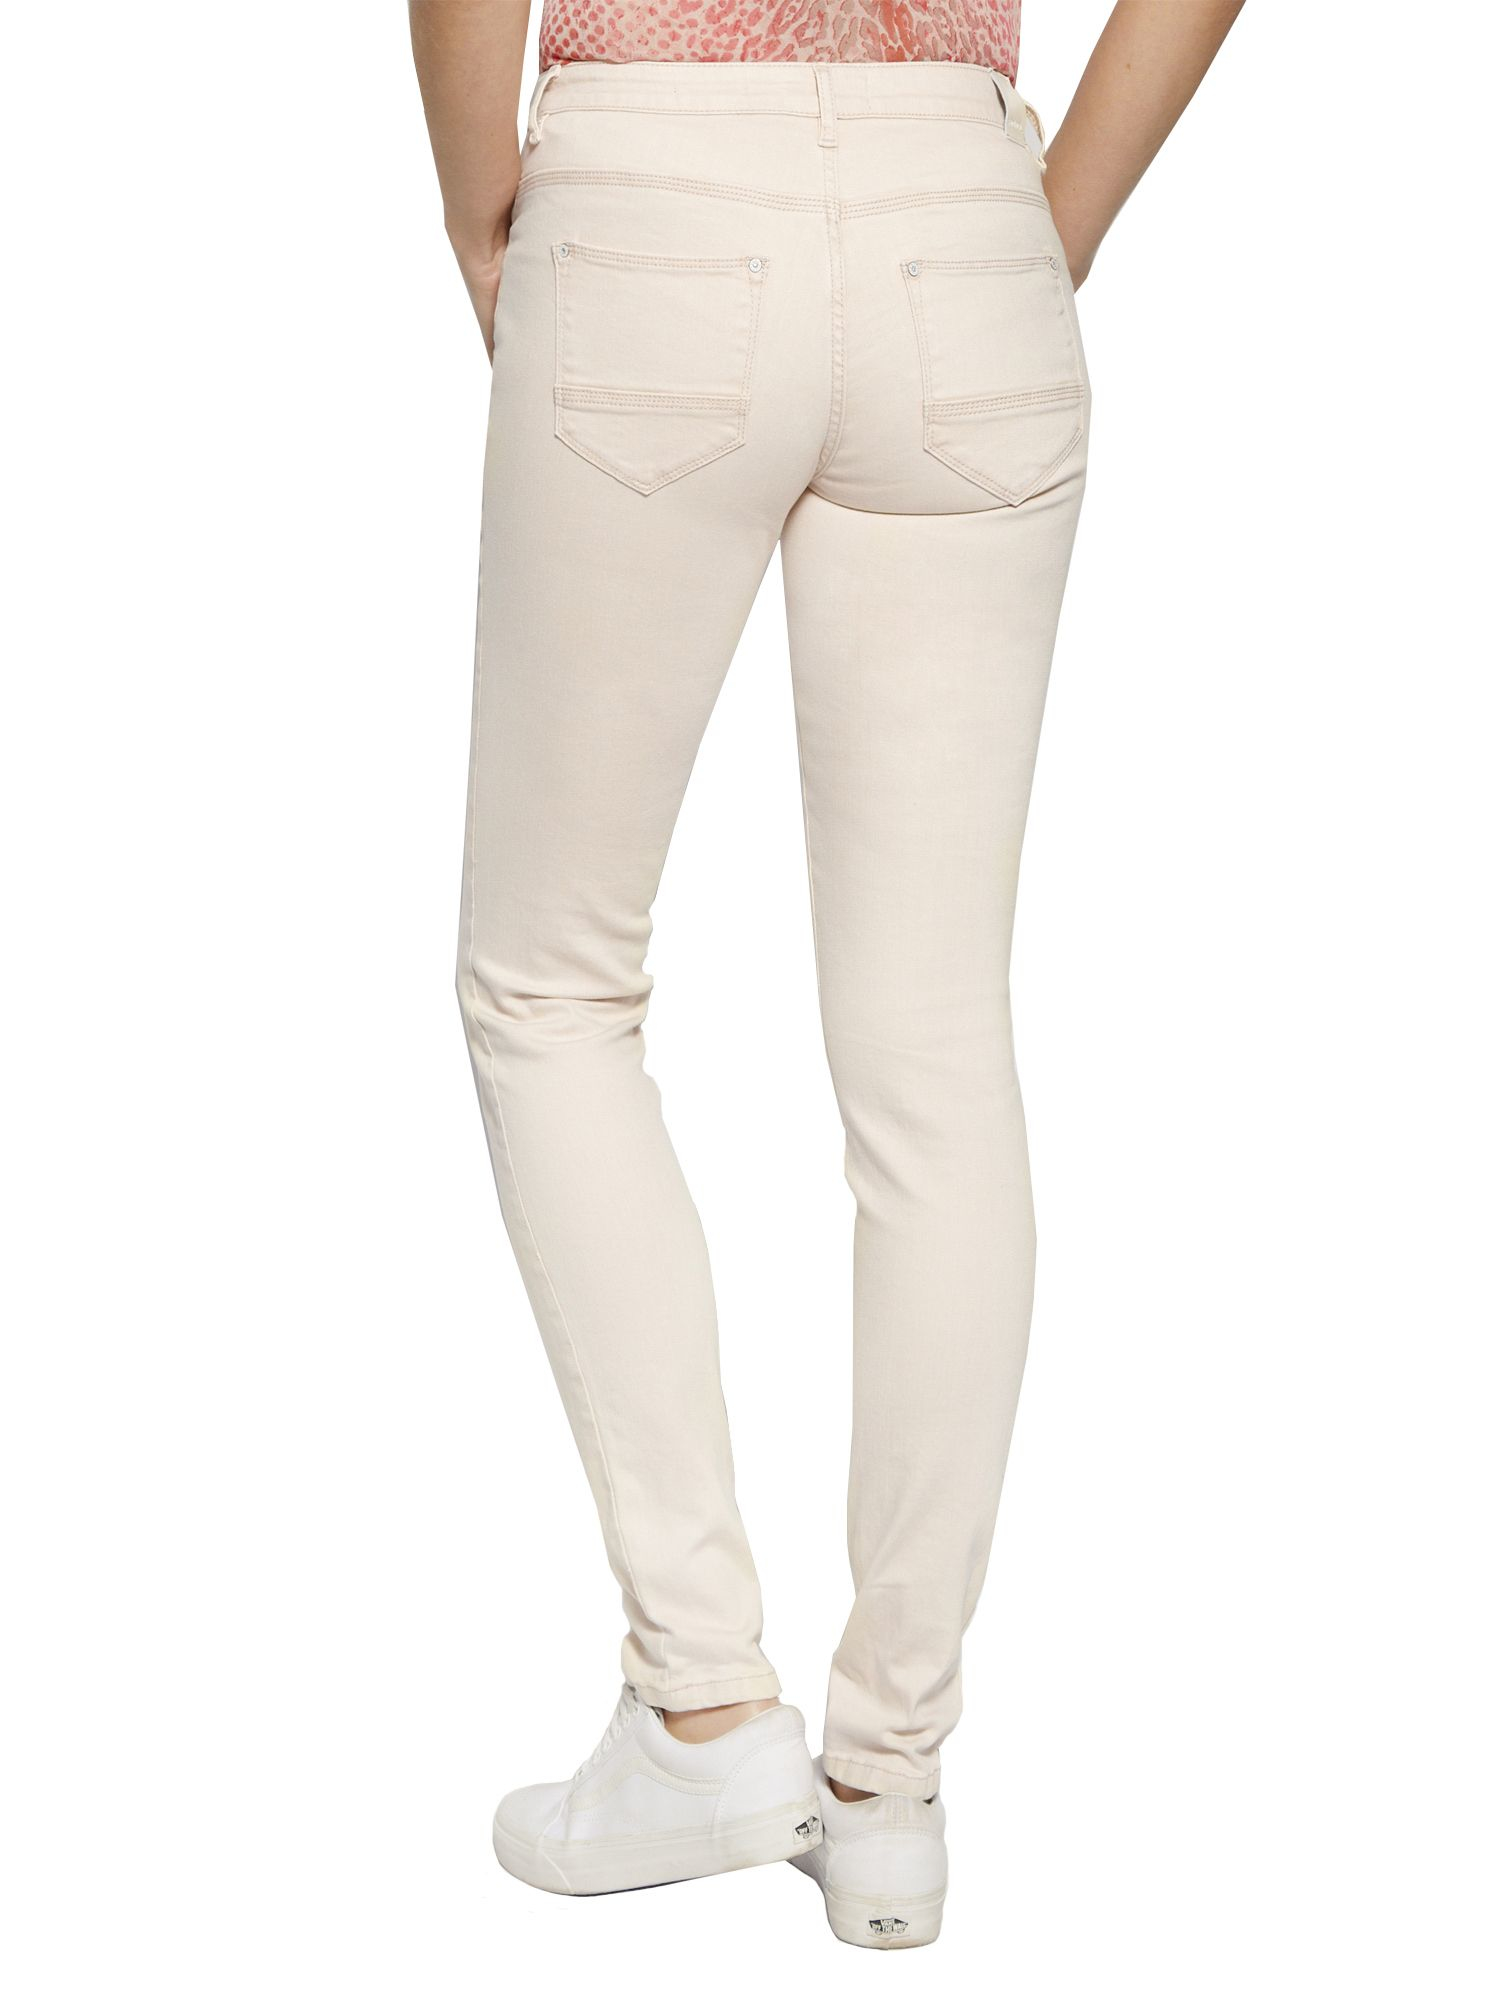 Sandwich Denim Embroidered Skinny Jeans in Cream (Natural)